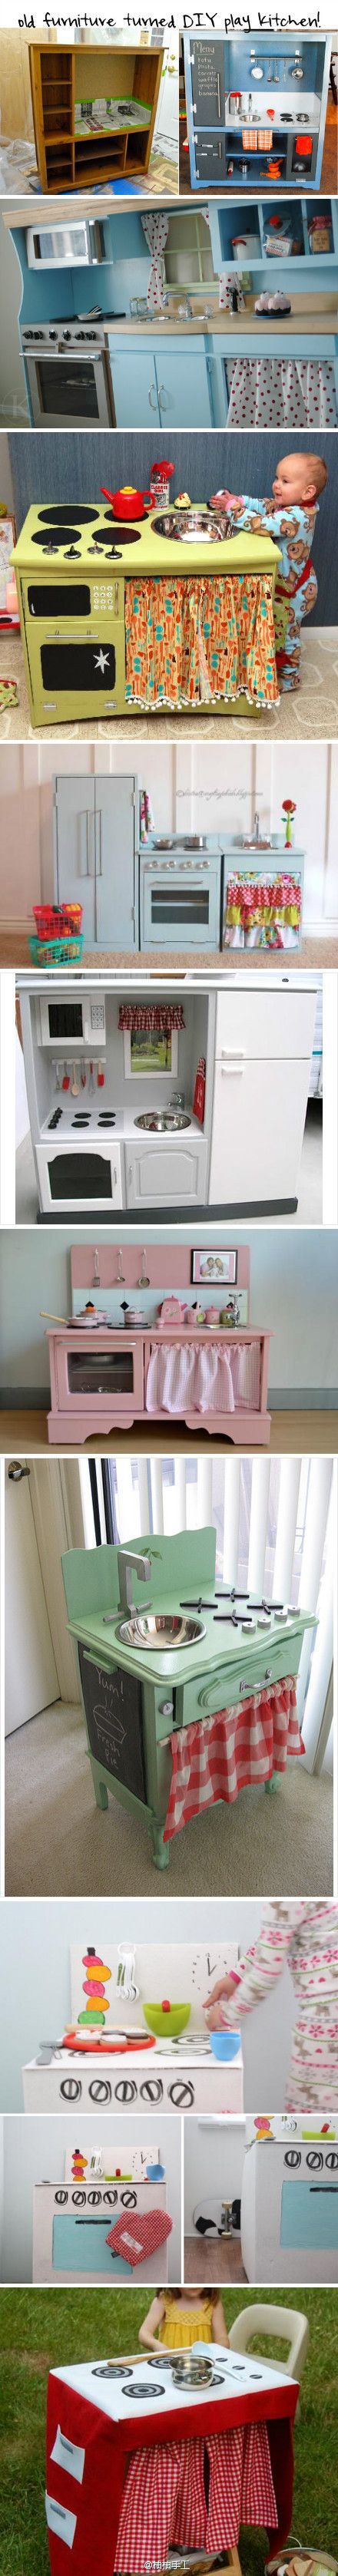 Old furniture turned DIY play kitchen